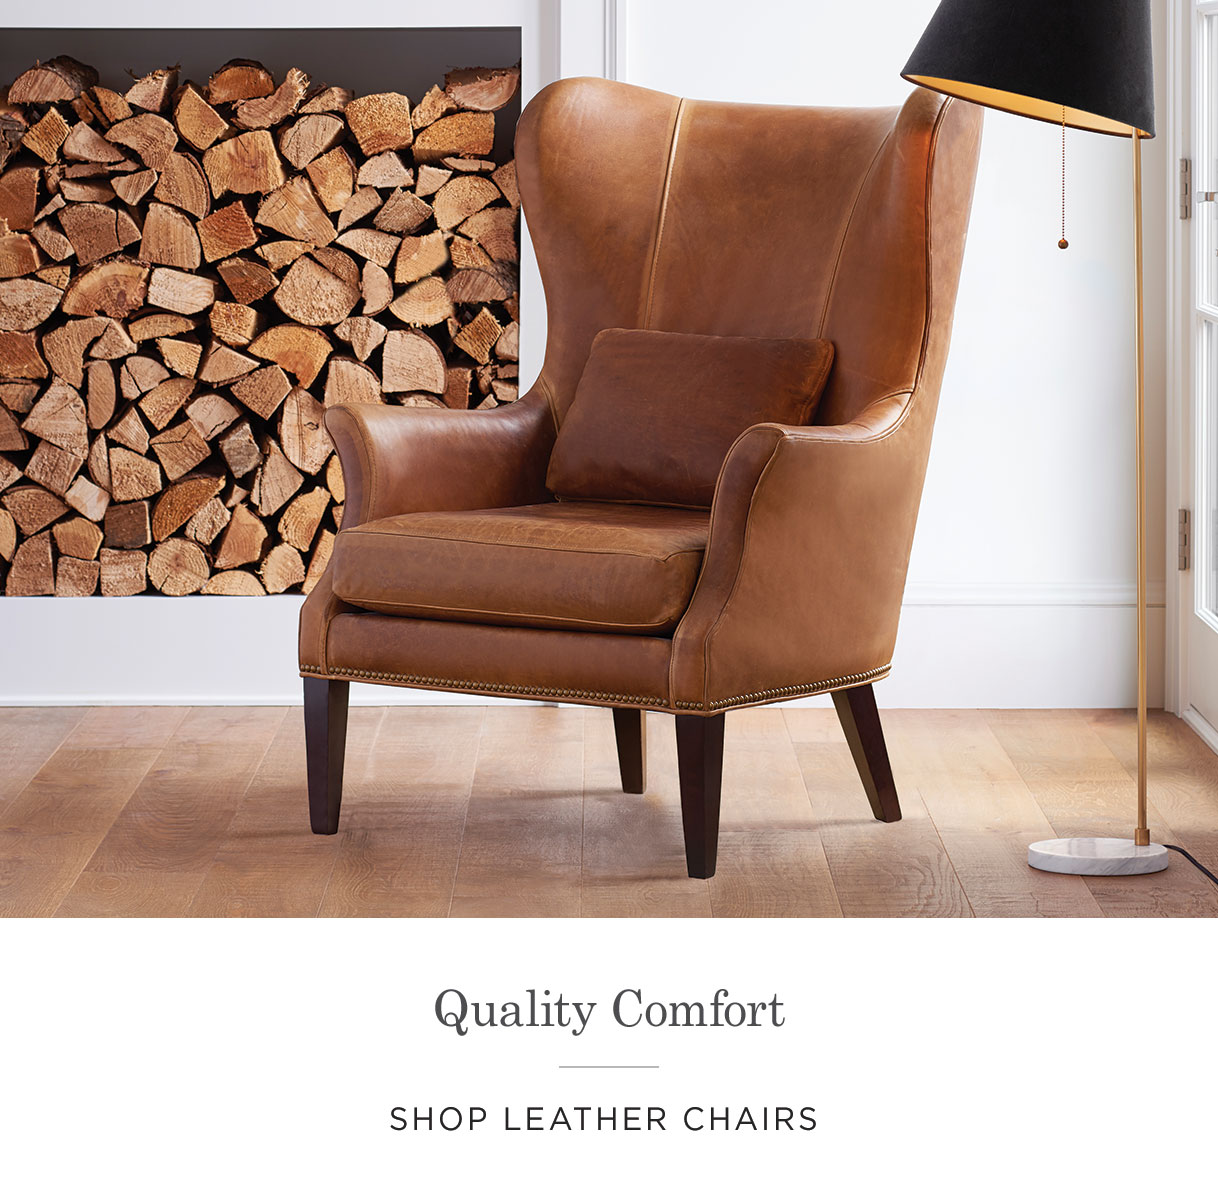 Shop Leather Chairs